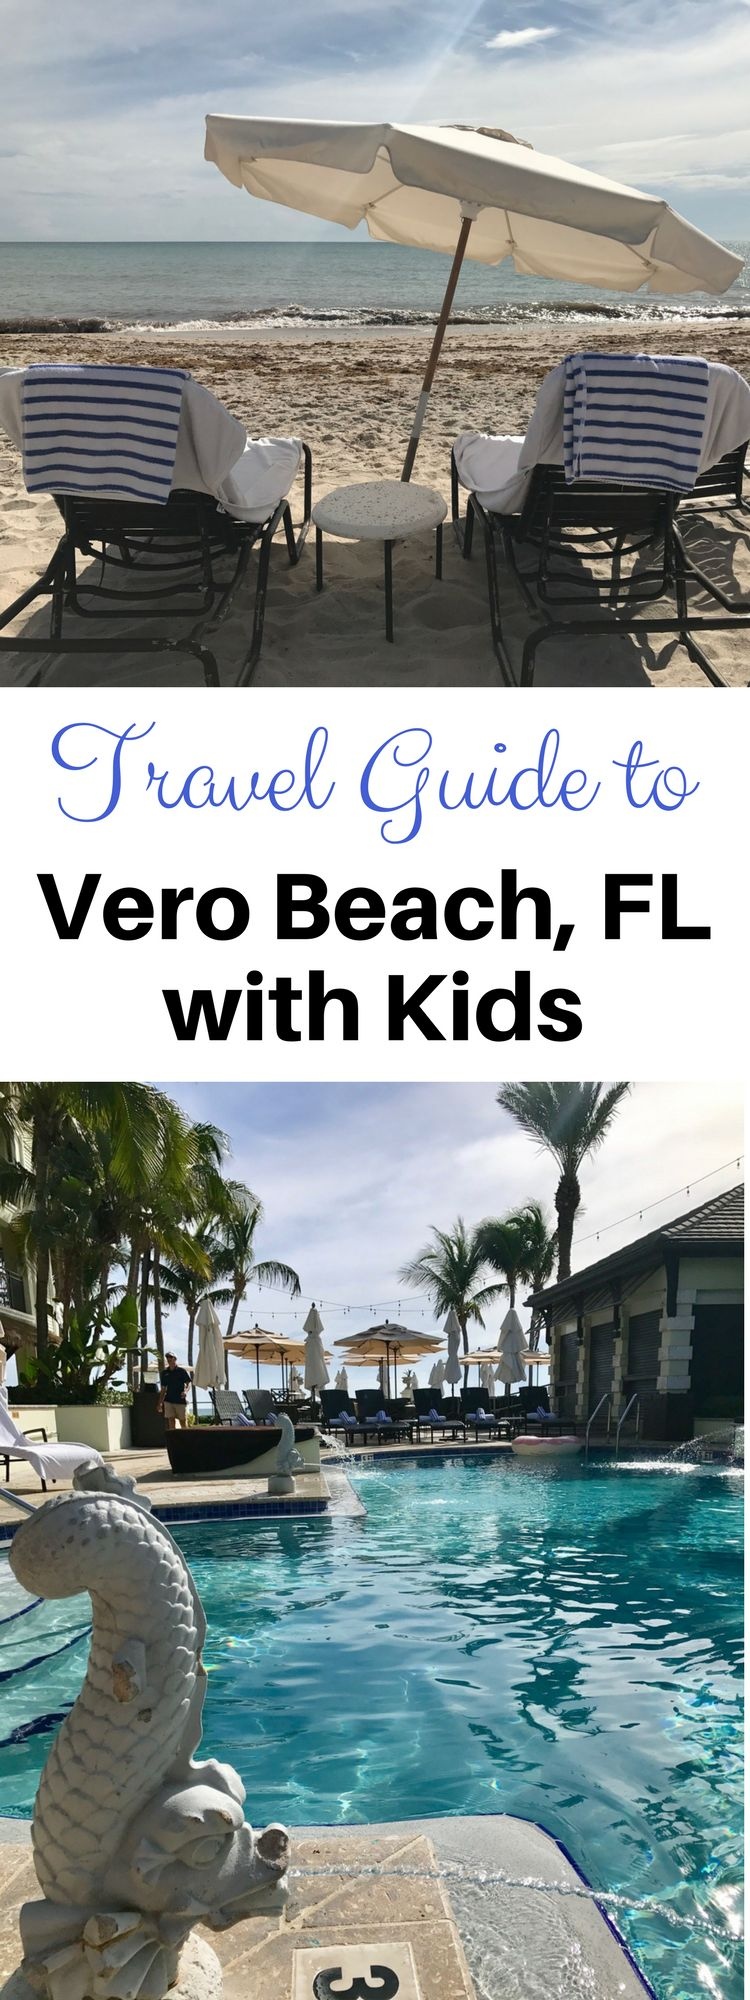 Family Travel Guide to Vero Beach Florida with Kids